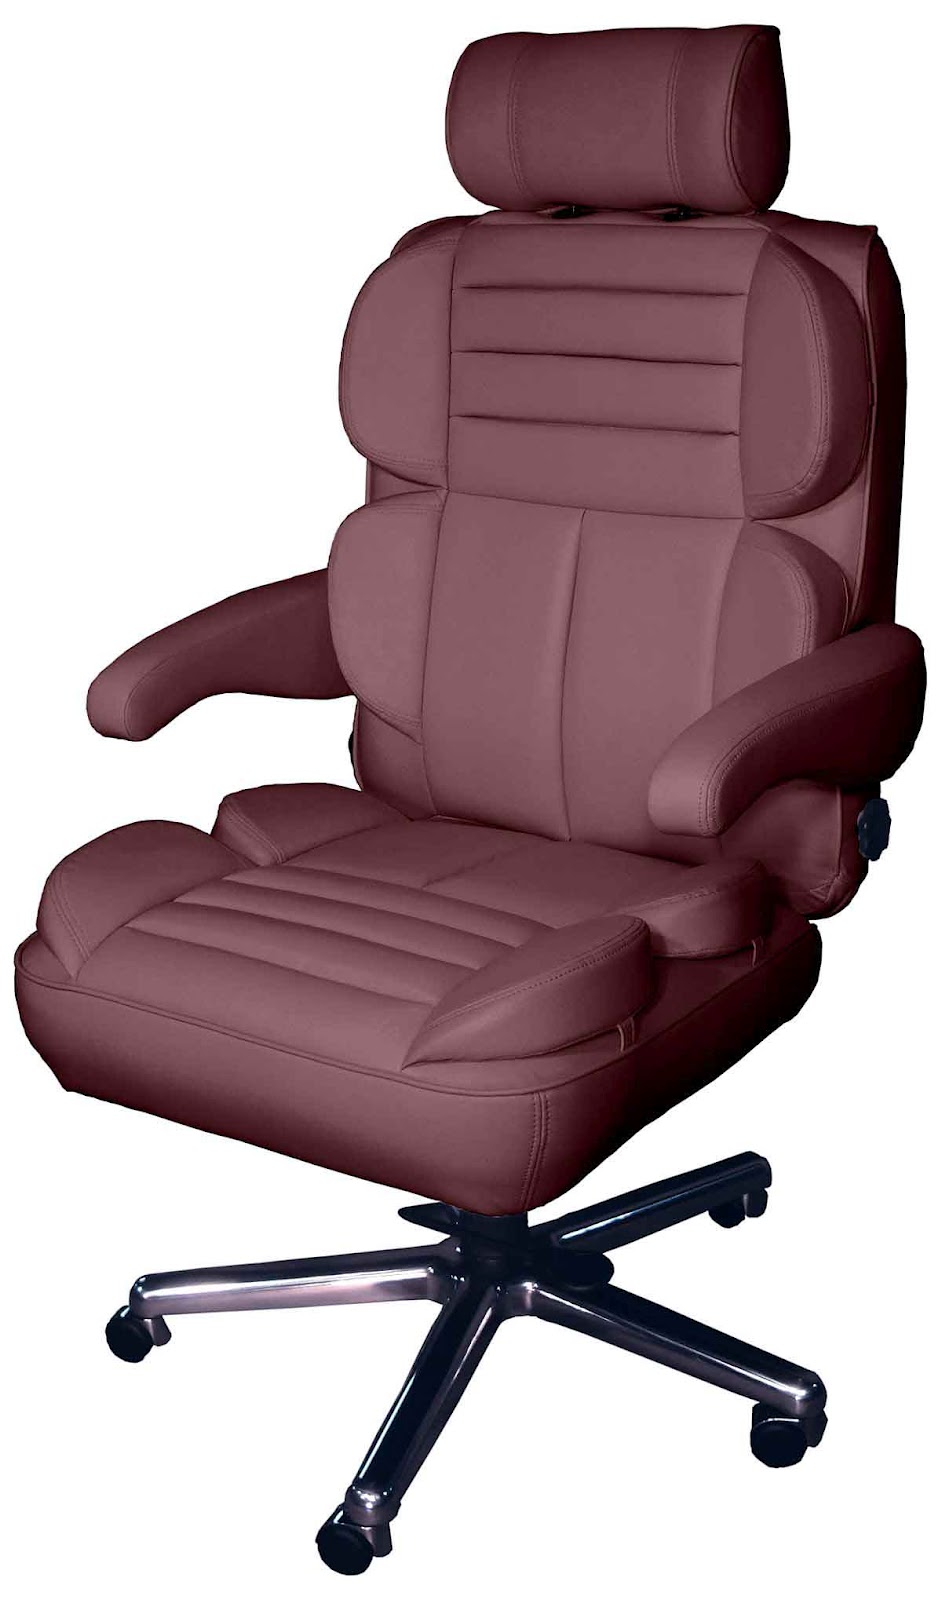 Comfortable office chairs designs. : An Interior Design